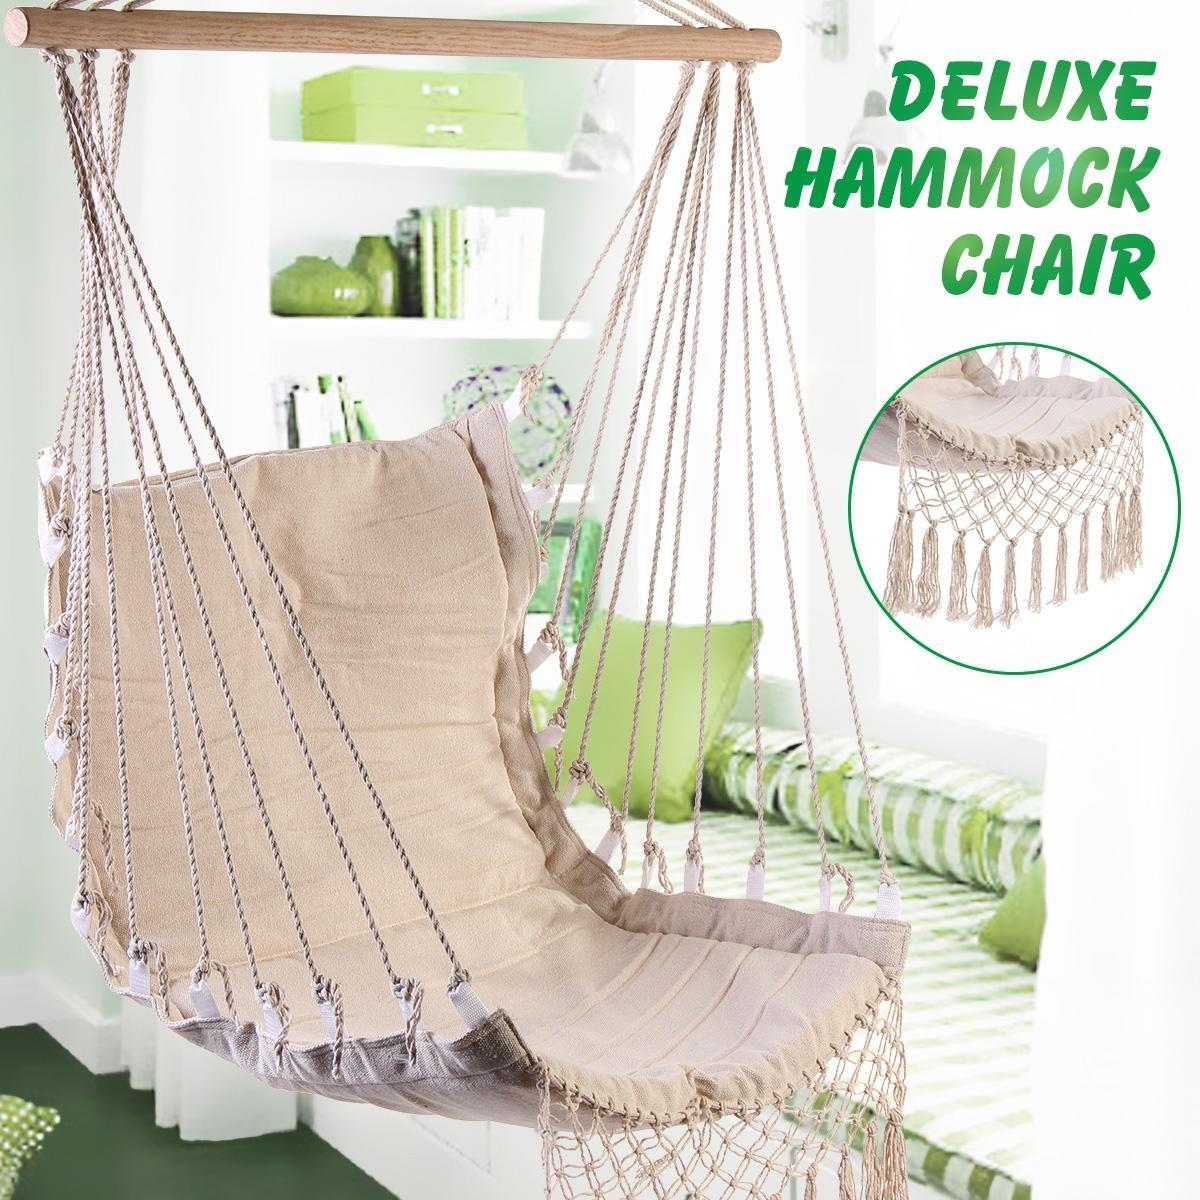 Nordic Style Deluxe Hammock Outdoor Indoor Garden Dormitory Bedroom Hanging Chair For Child Adult Swinging Single Safety ChairNordic Style Deluxe Hammock Outdoor Indoor Garden Dormitory Bedroom Hanging Chair For Child Adult Swinging Single Safety Chair